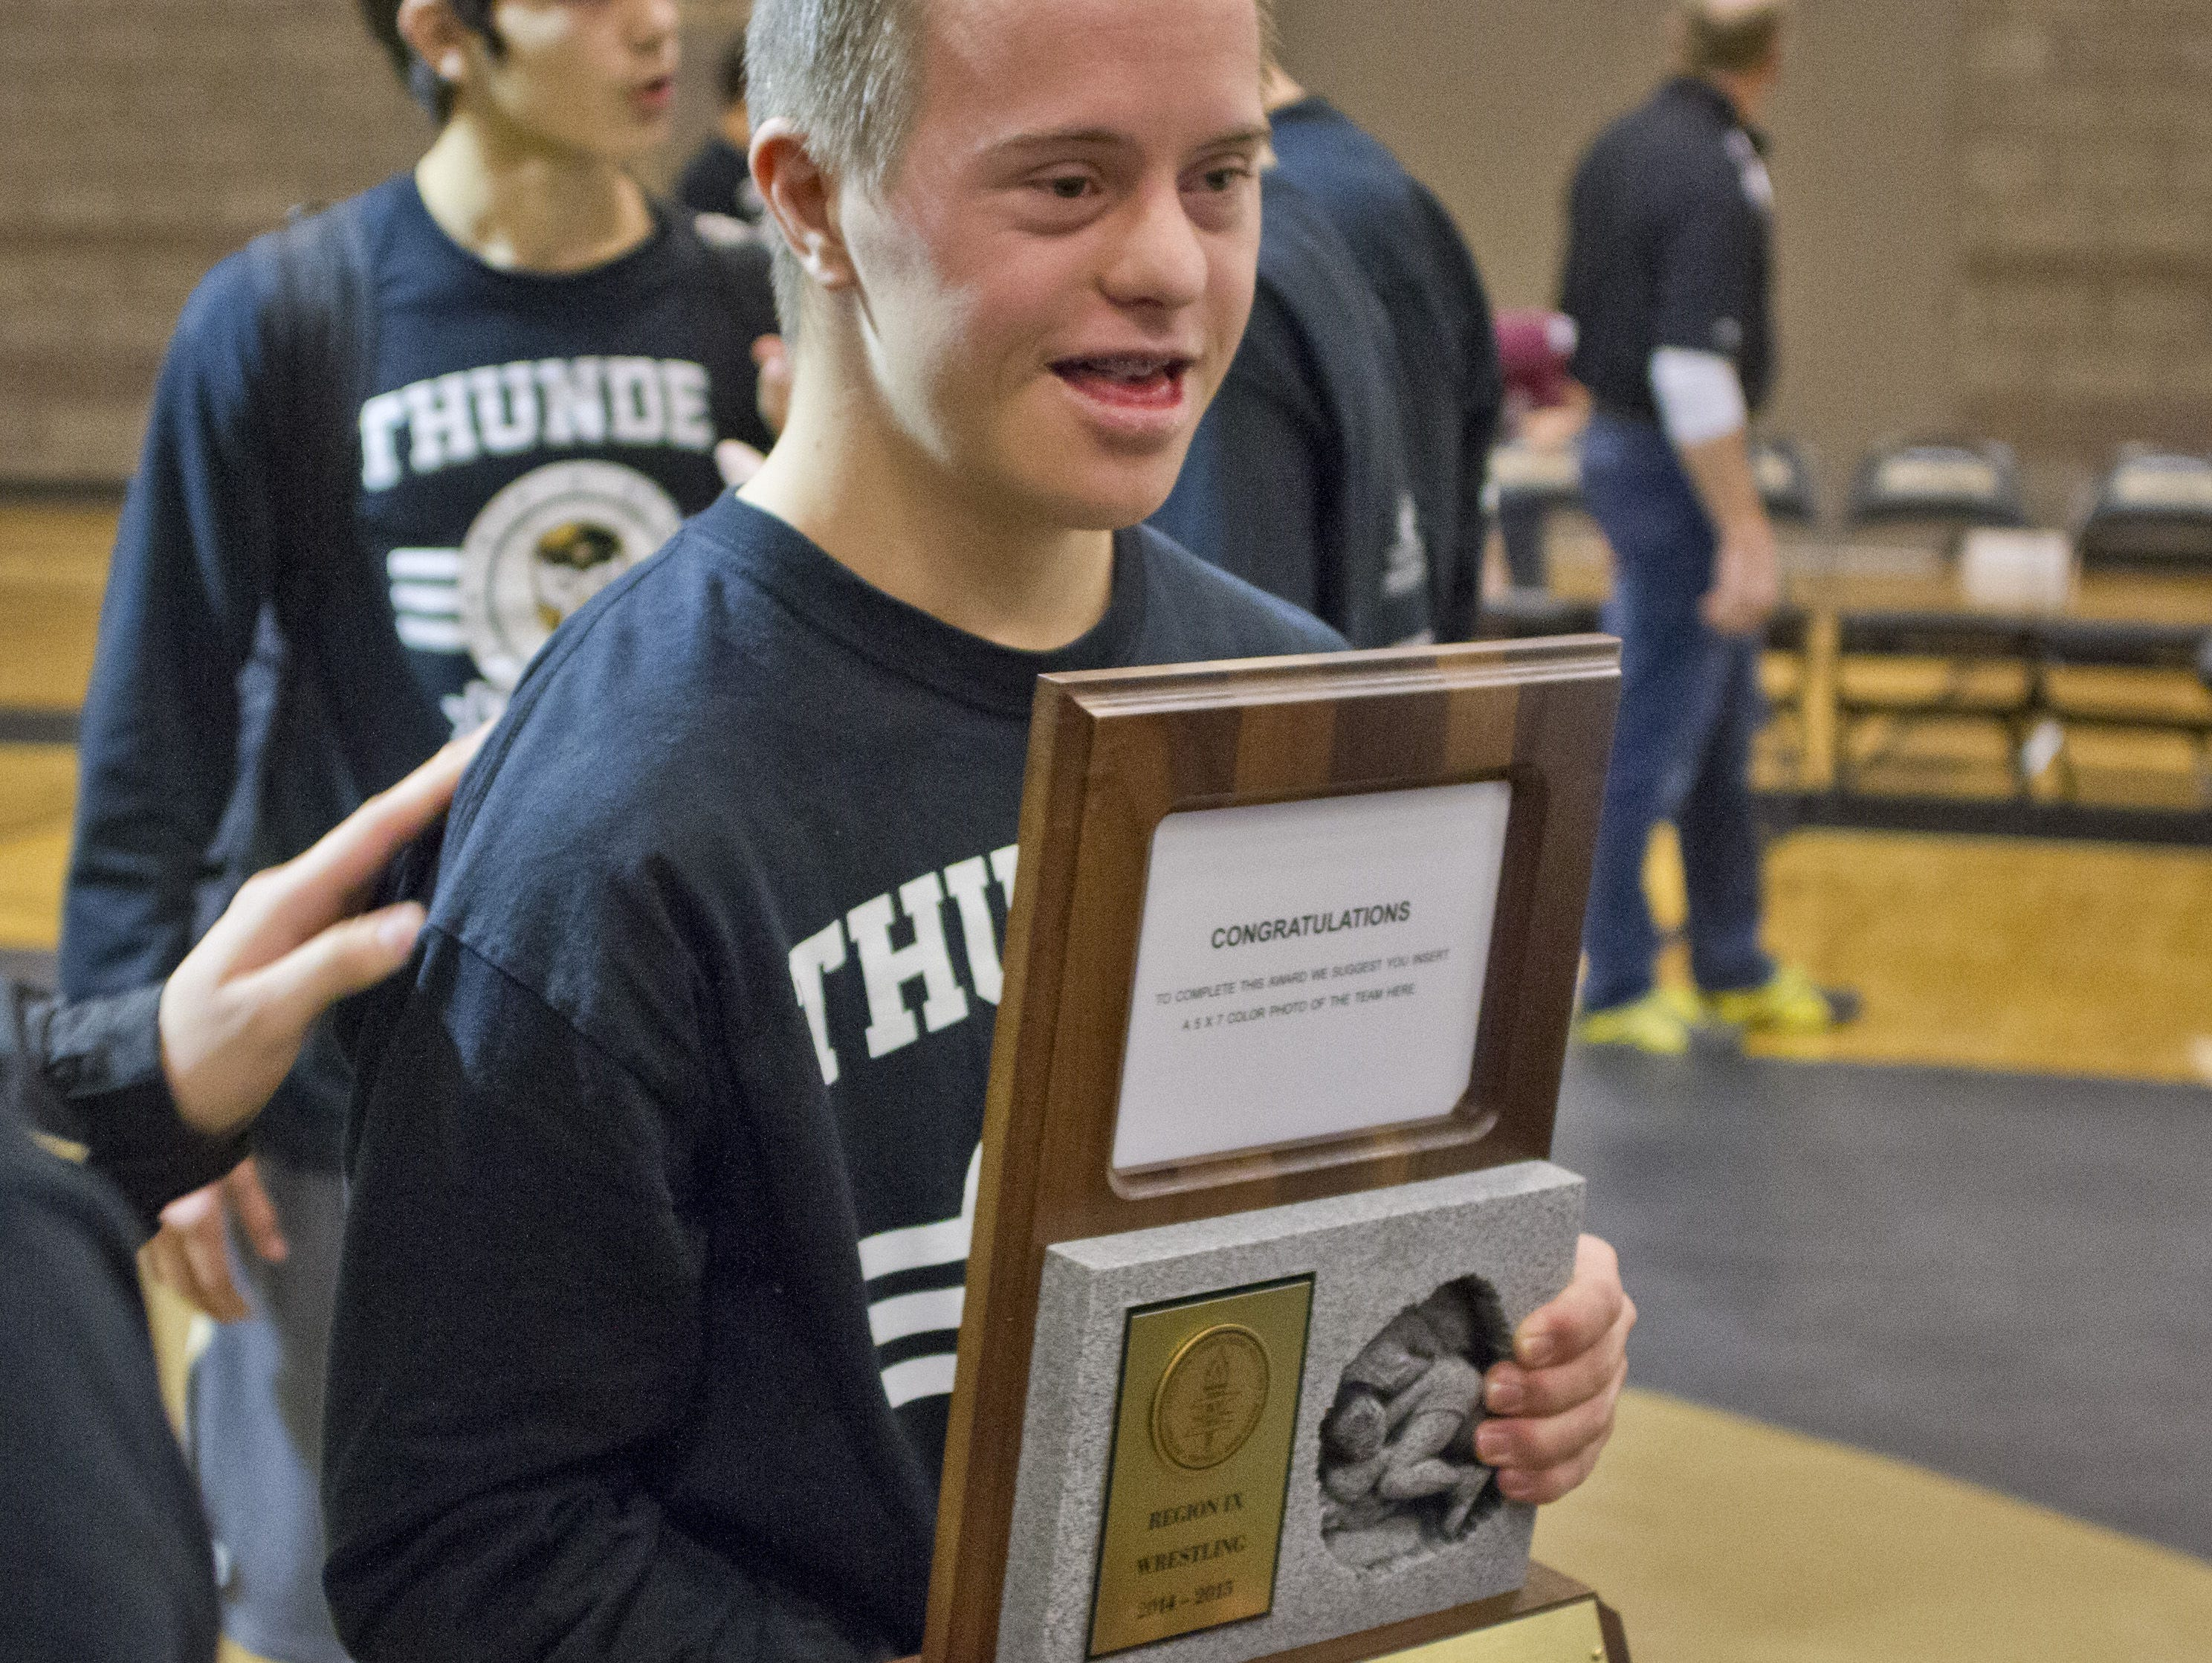 Dallin Birch from Desert Hills poses with the Region Championship trophy after starting the night by winning his match Thursday, Jan. 29, 2015.